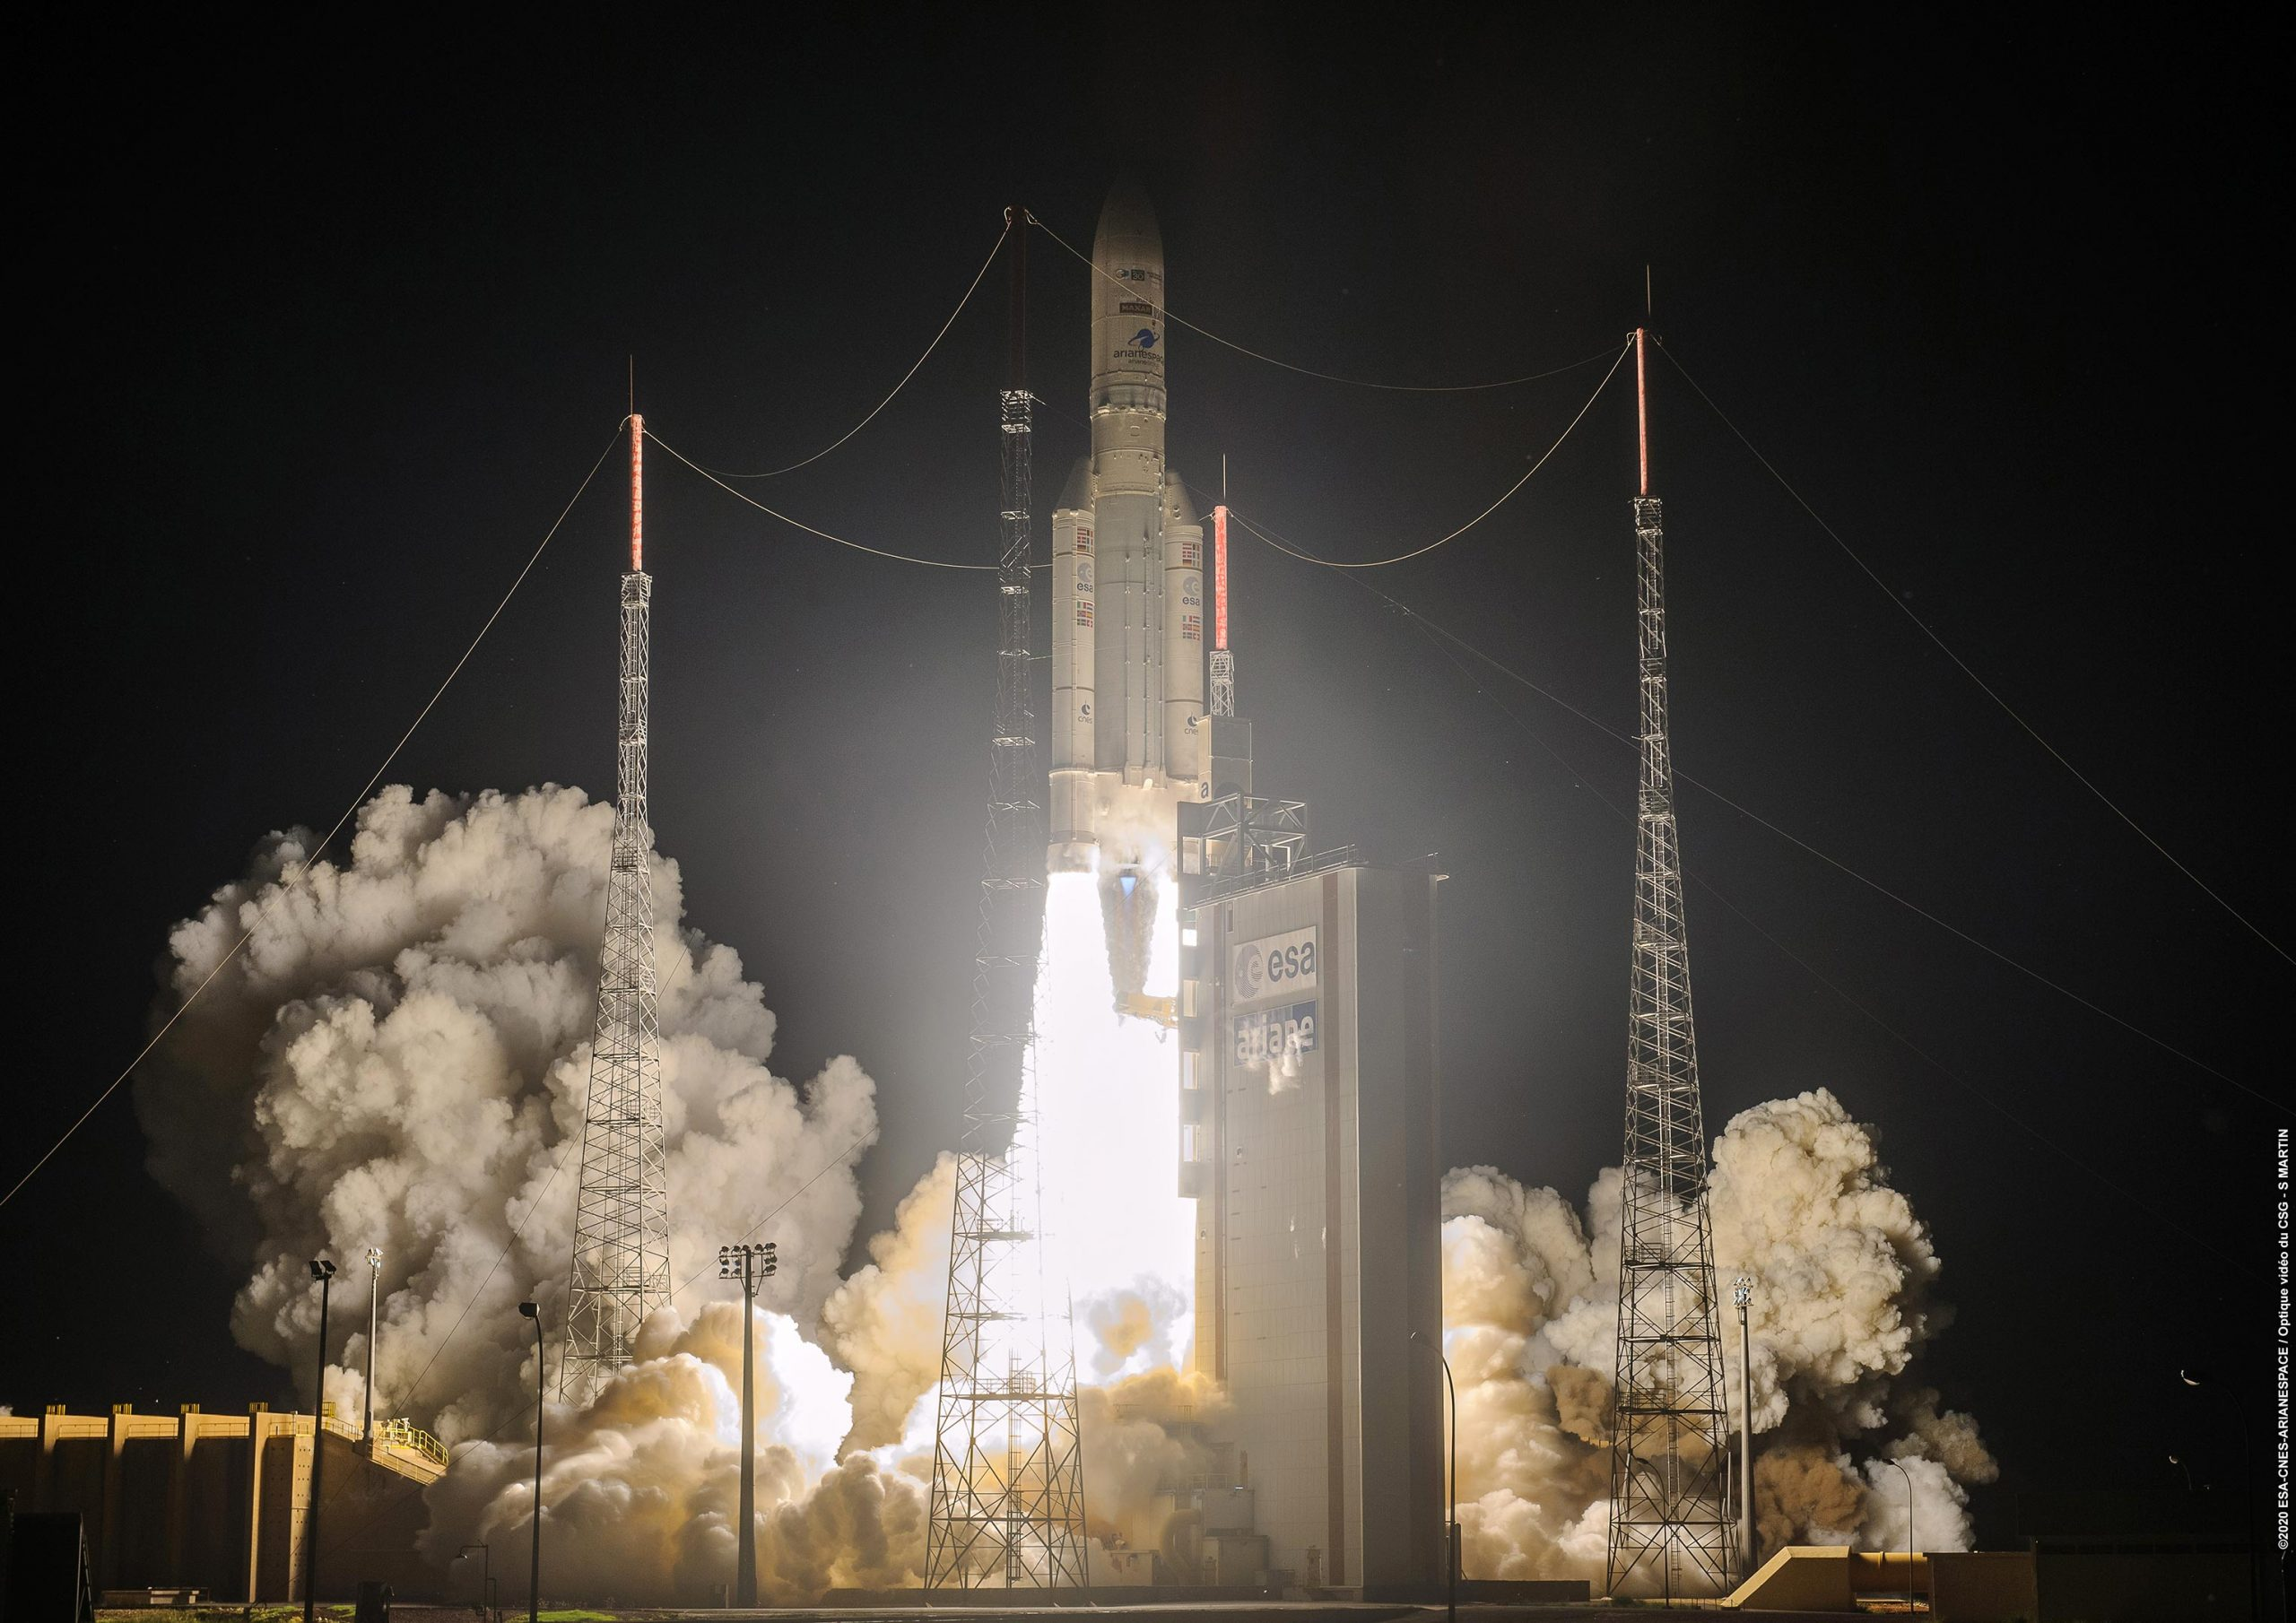 Second Northrop Grumman Mission Extension Vehicle Launched